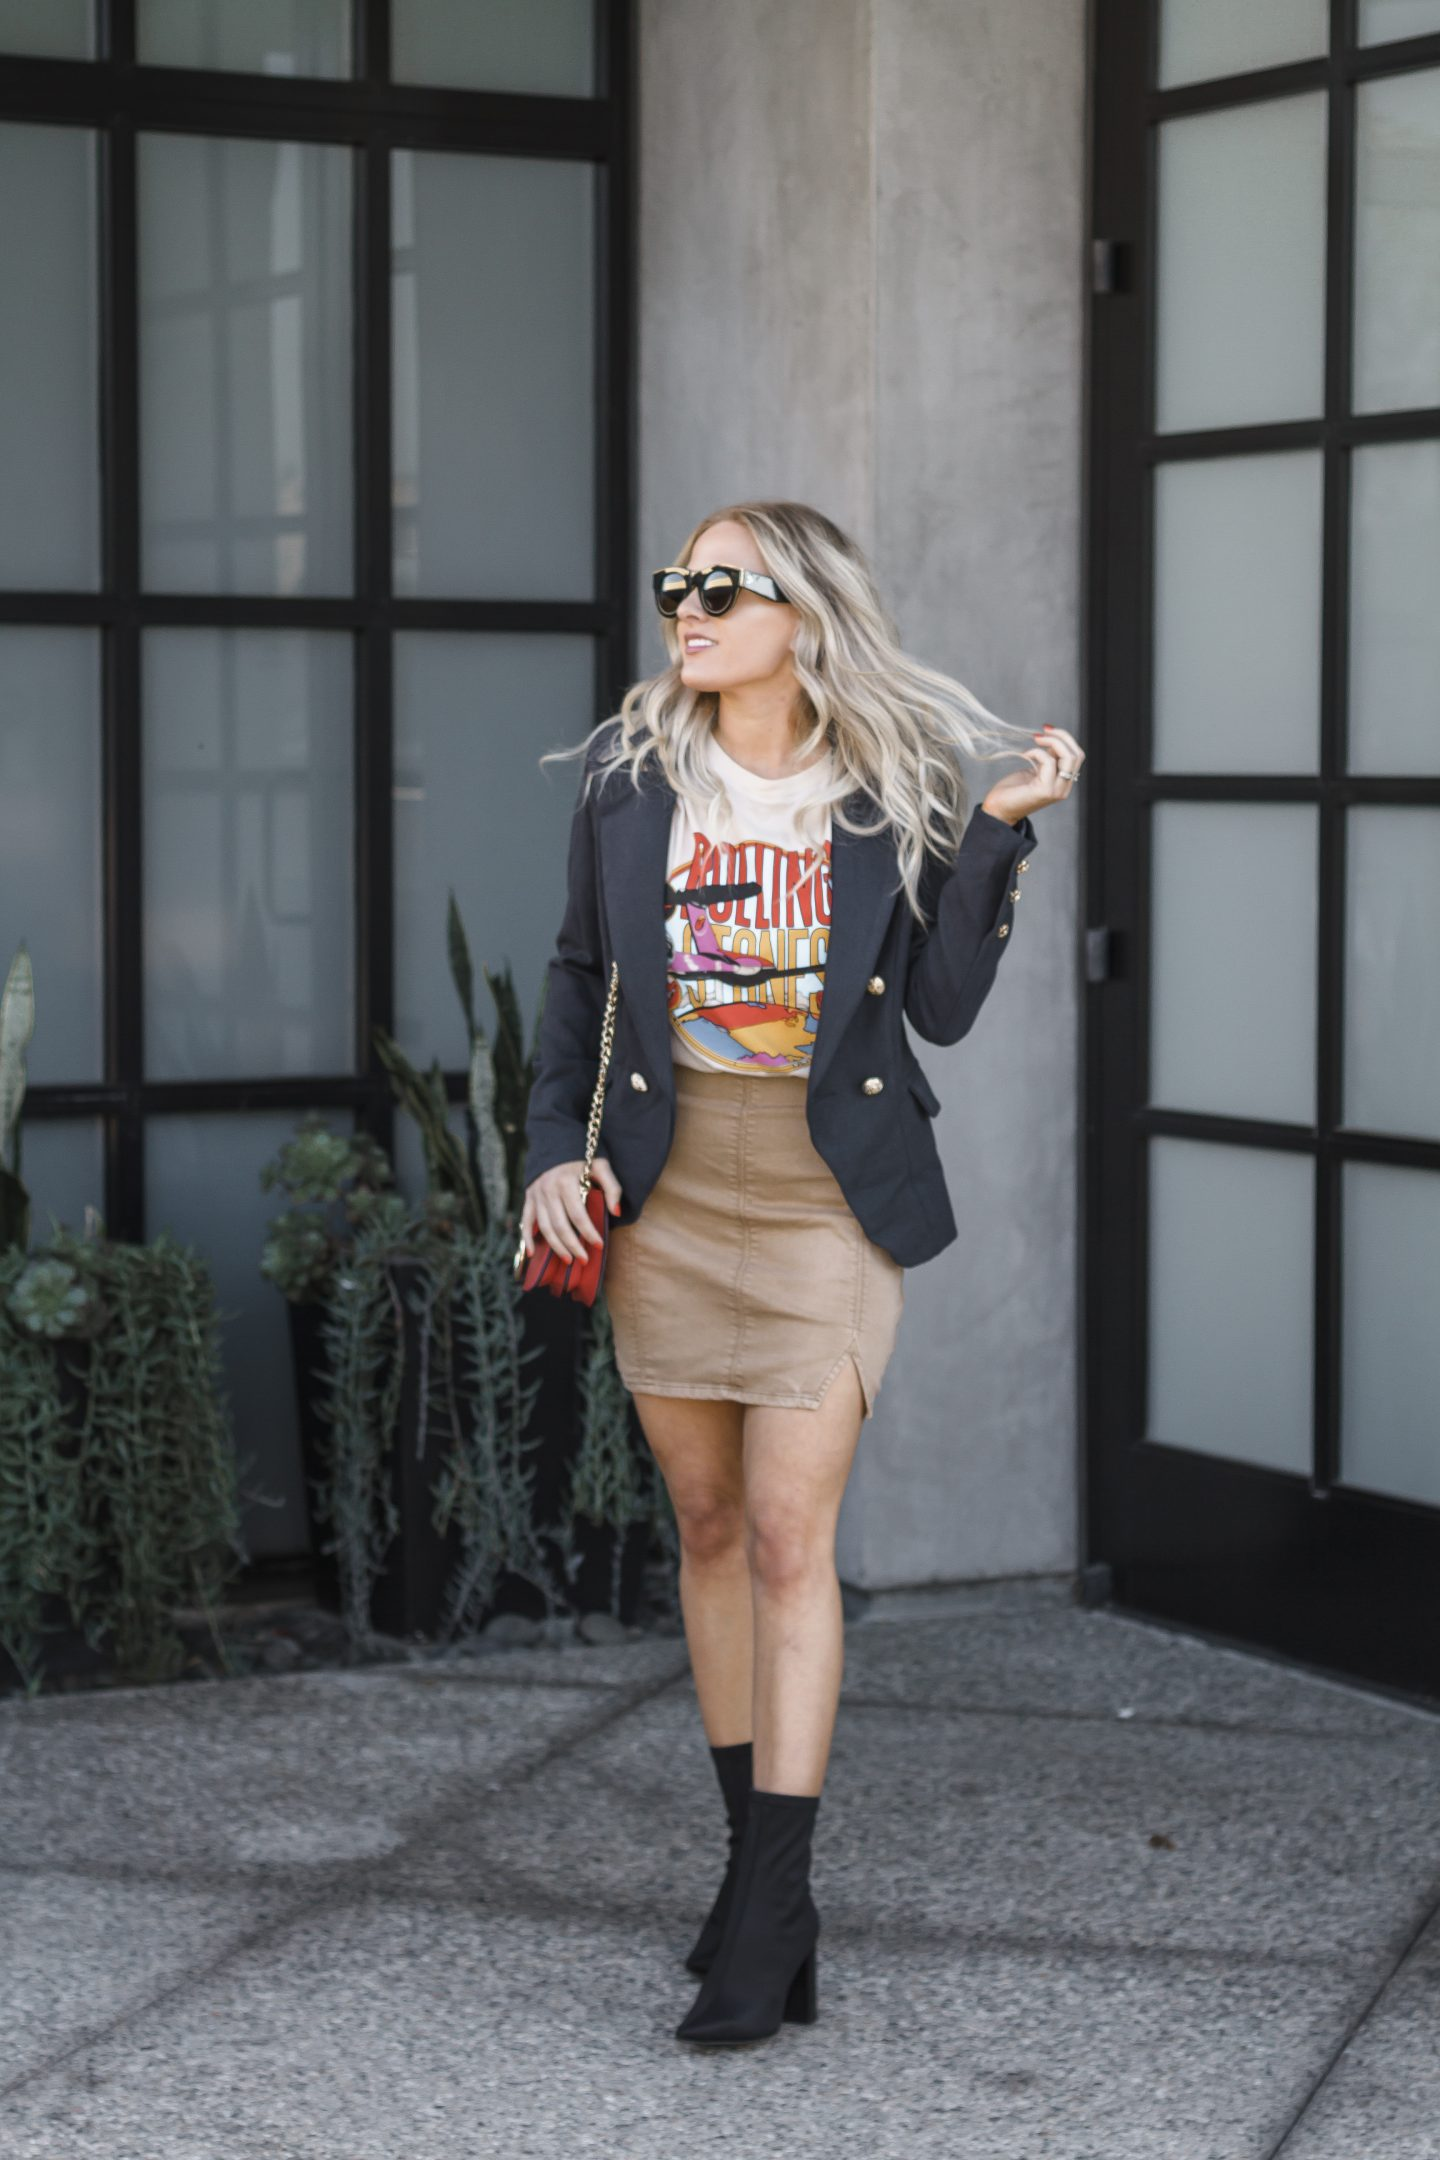 Rolling Stones band tee styled by popular Orange County fashion blogger, Dress Me Blonde